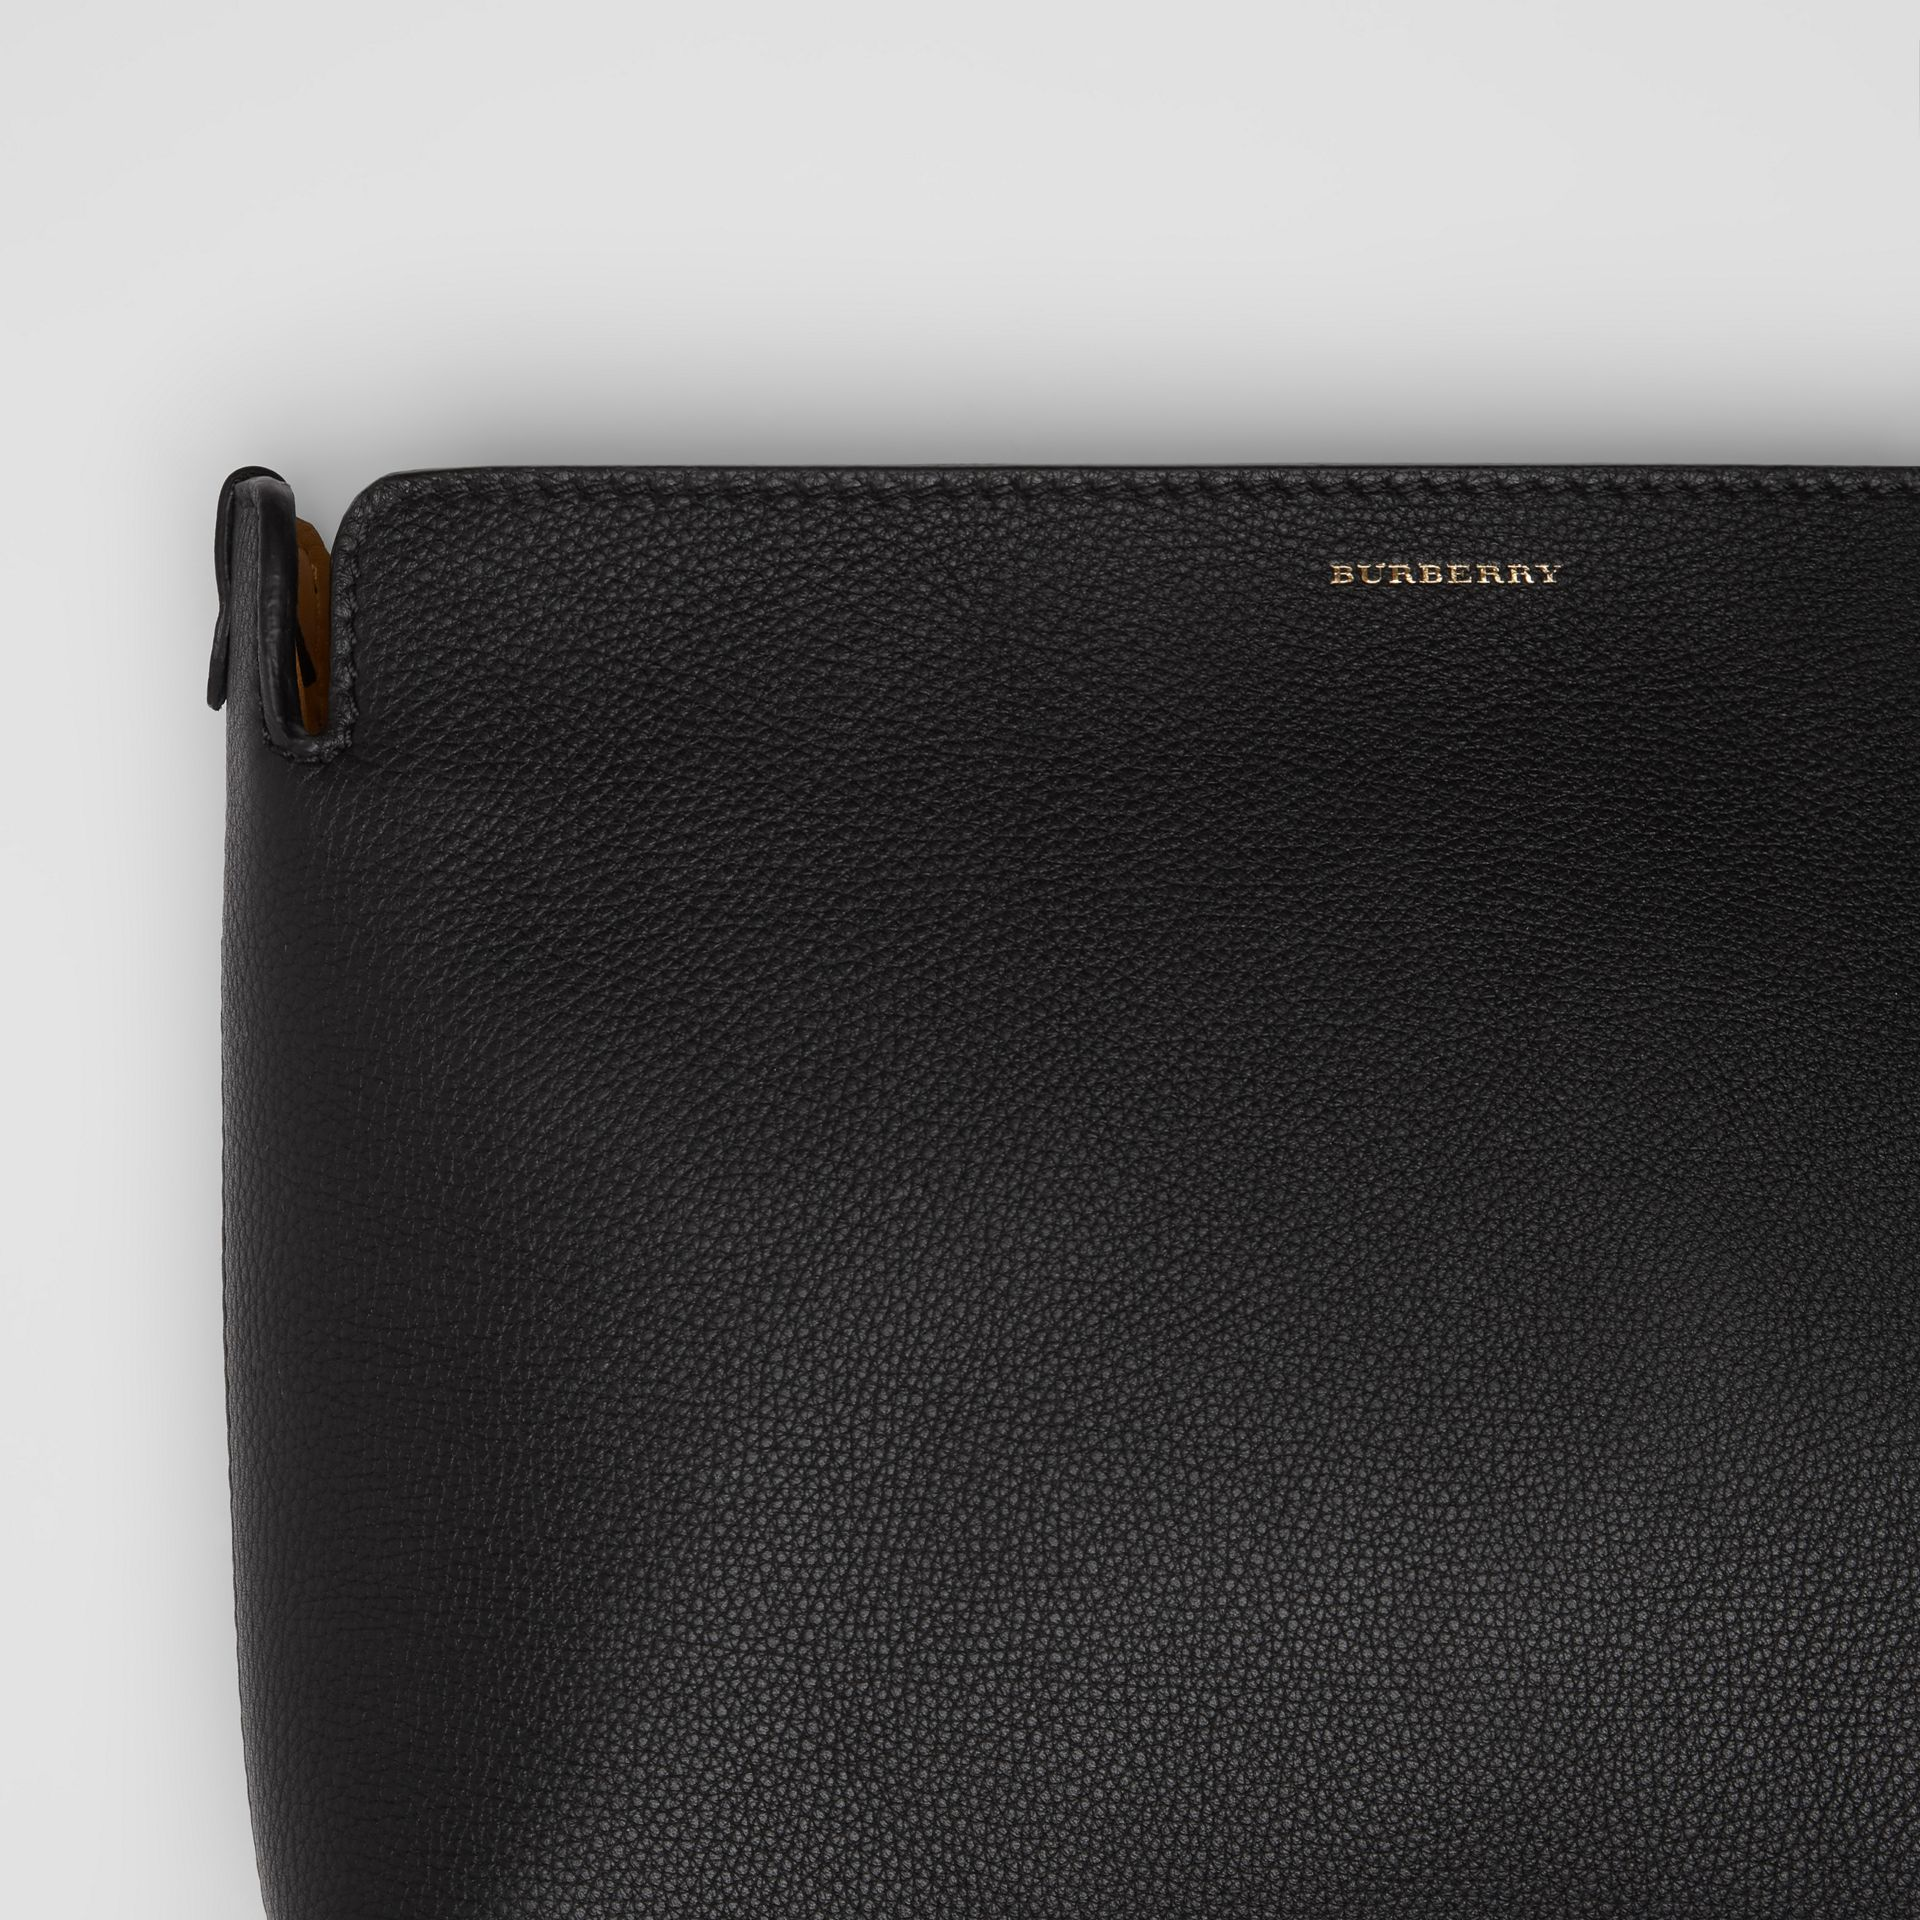 Medium Tri-tone Leather Clutch in Black/sea Green - Women | Burberry - gallery image 1